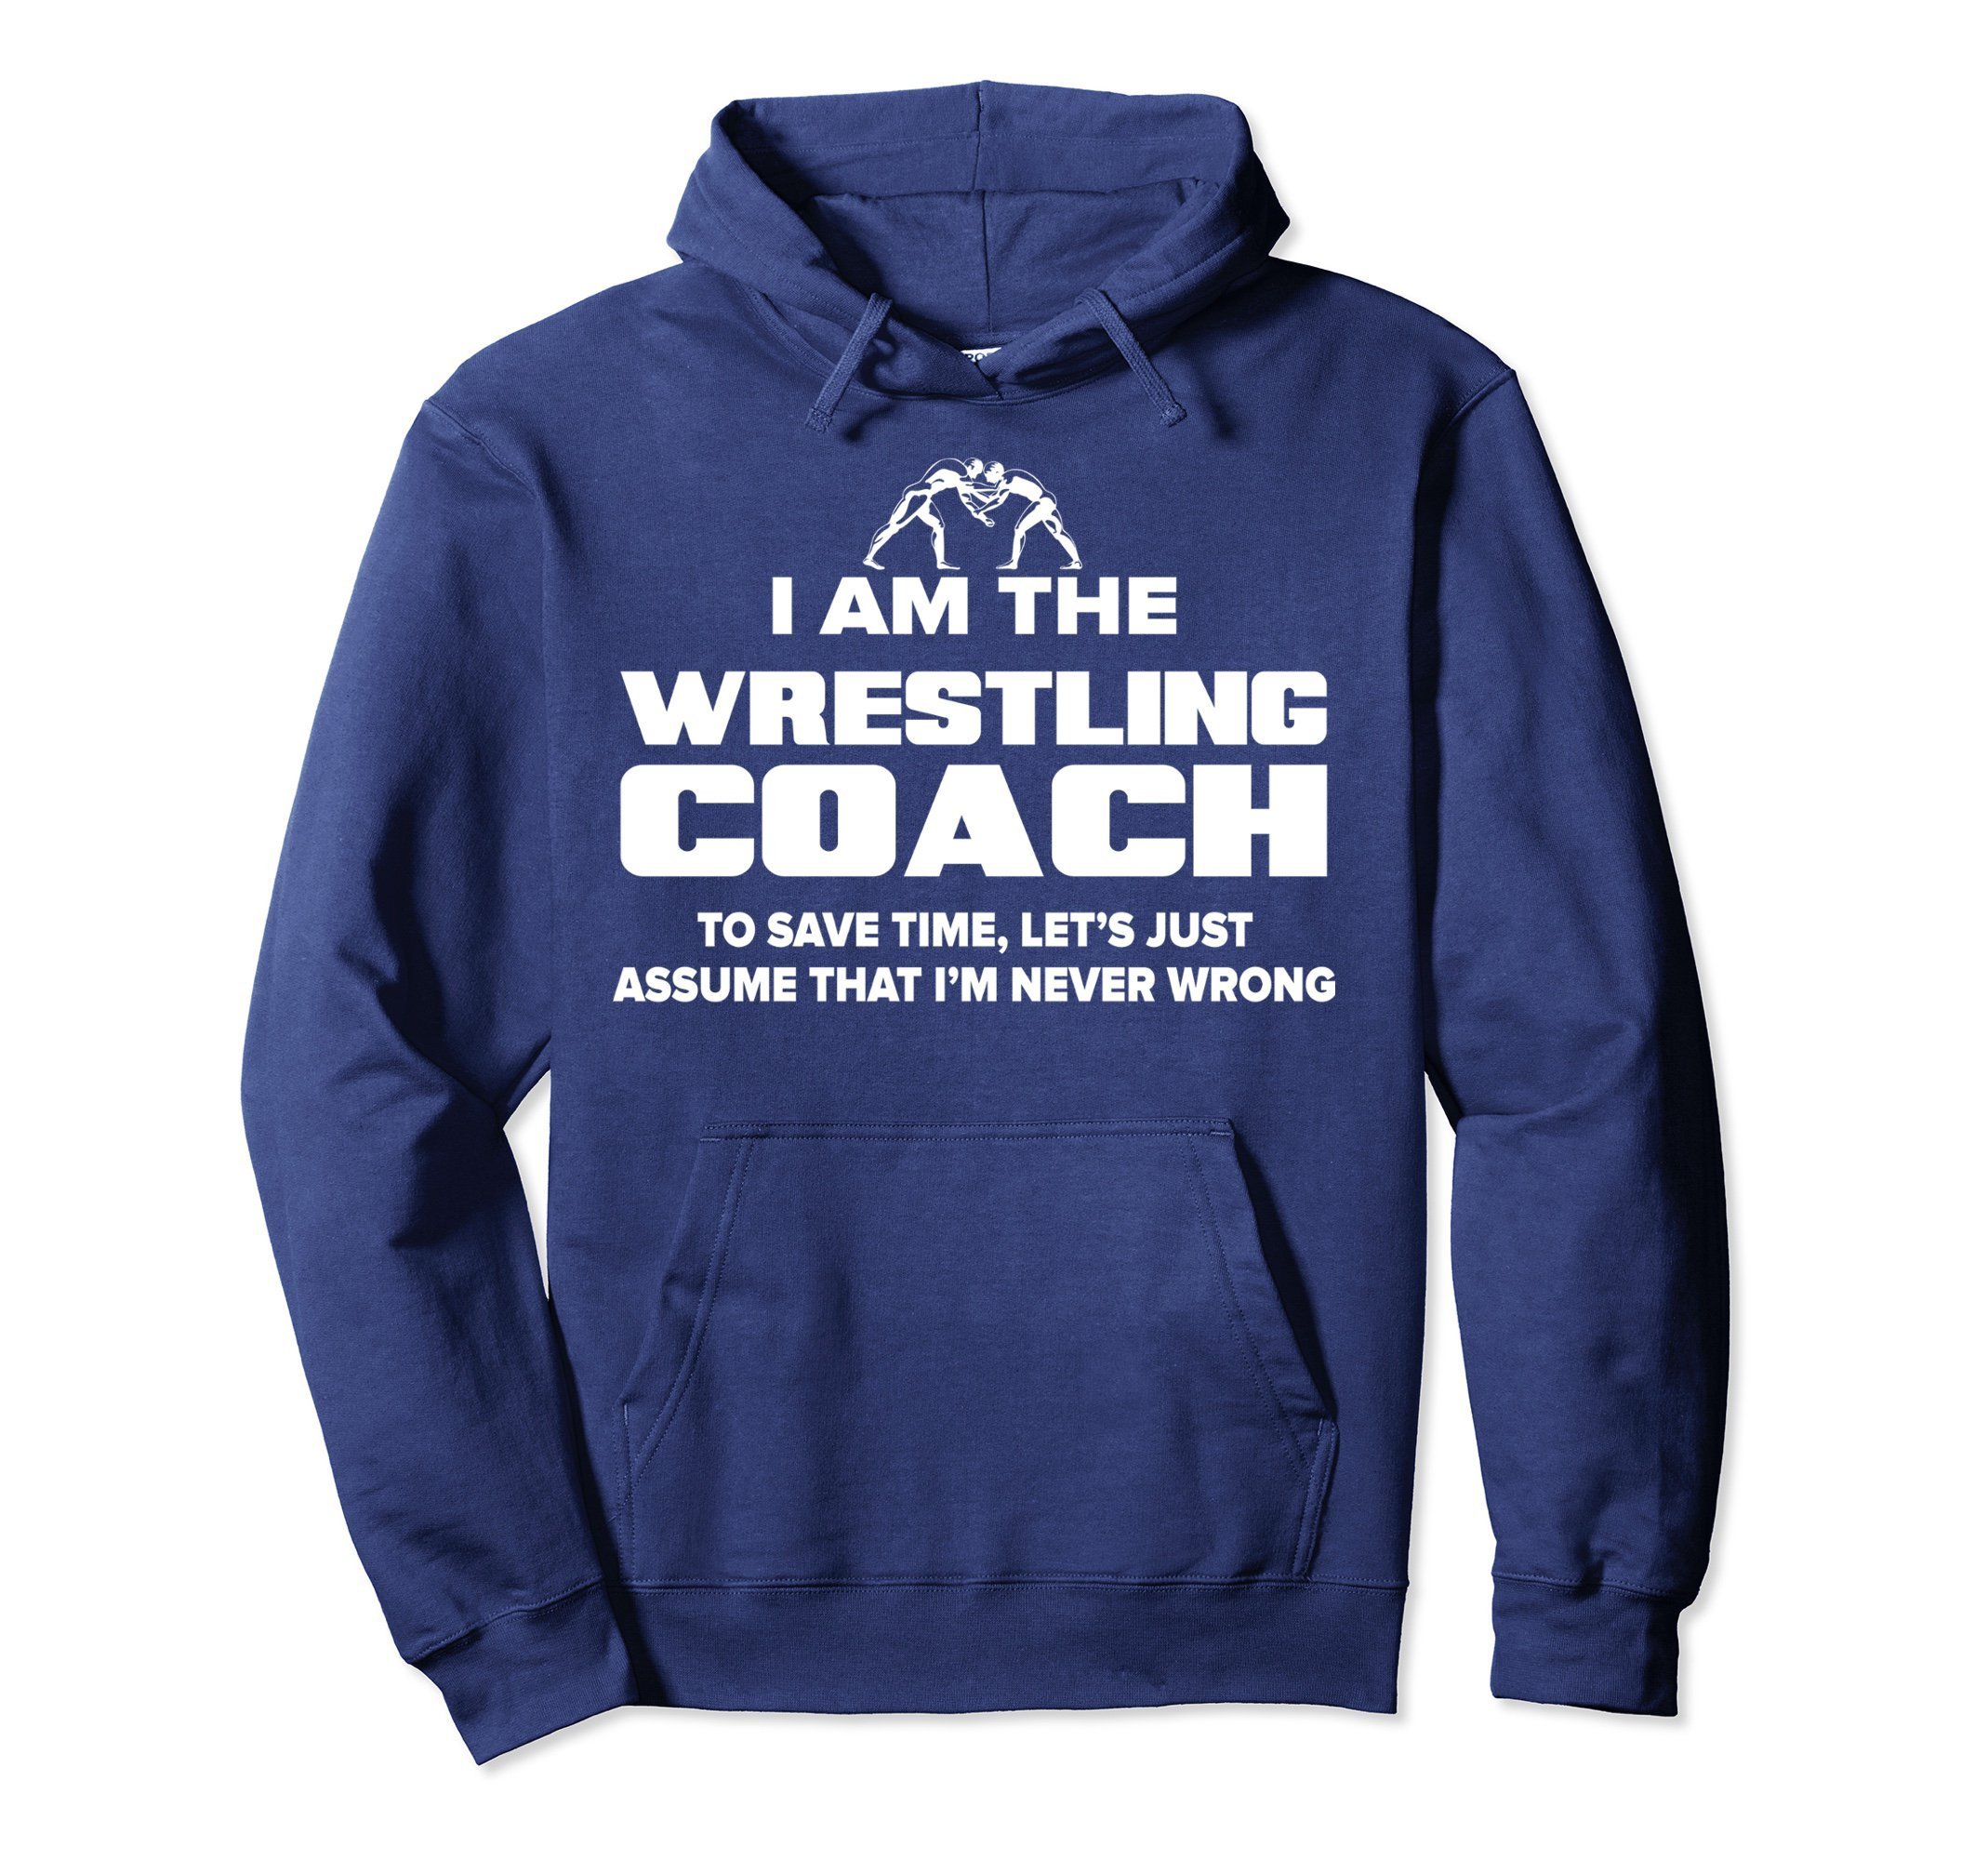 Unisex Wrestling Coach Pullover Hoodie - I'm Never Wrong! 2XL Navy